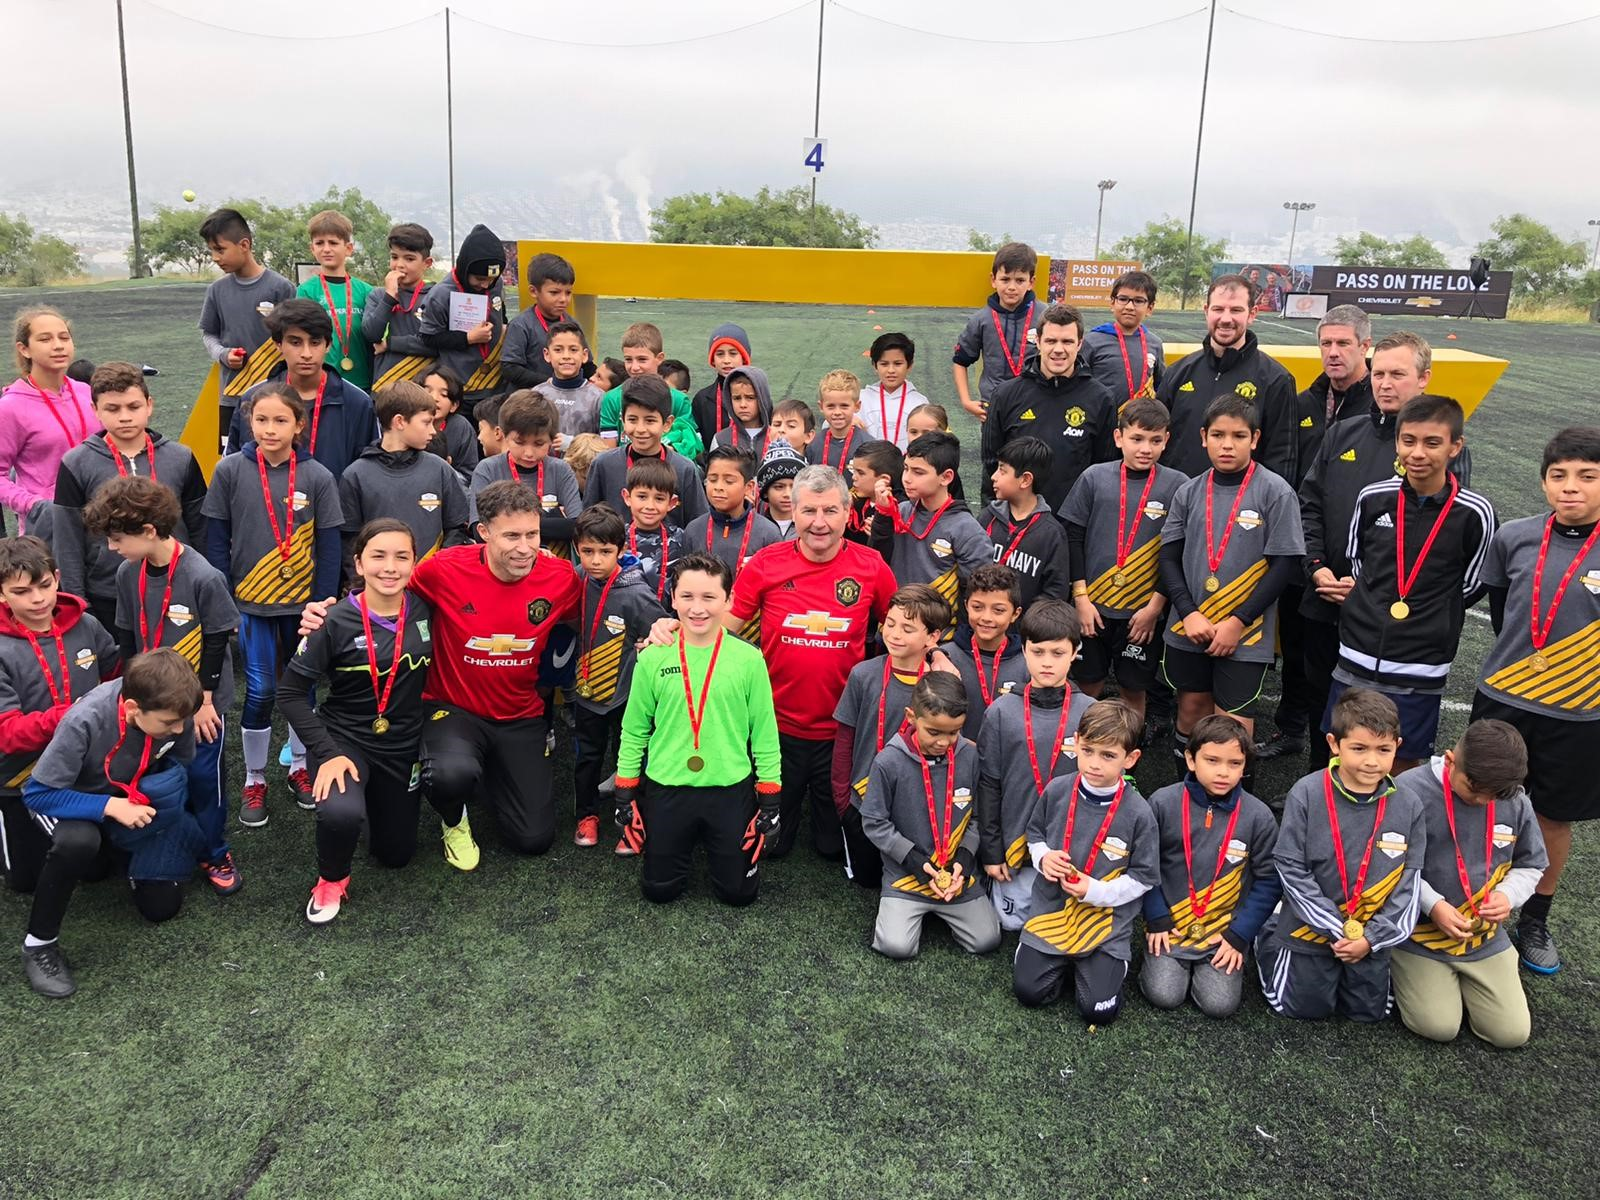 Pass On The Passion – the Chevrolet Football Festival